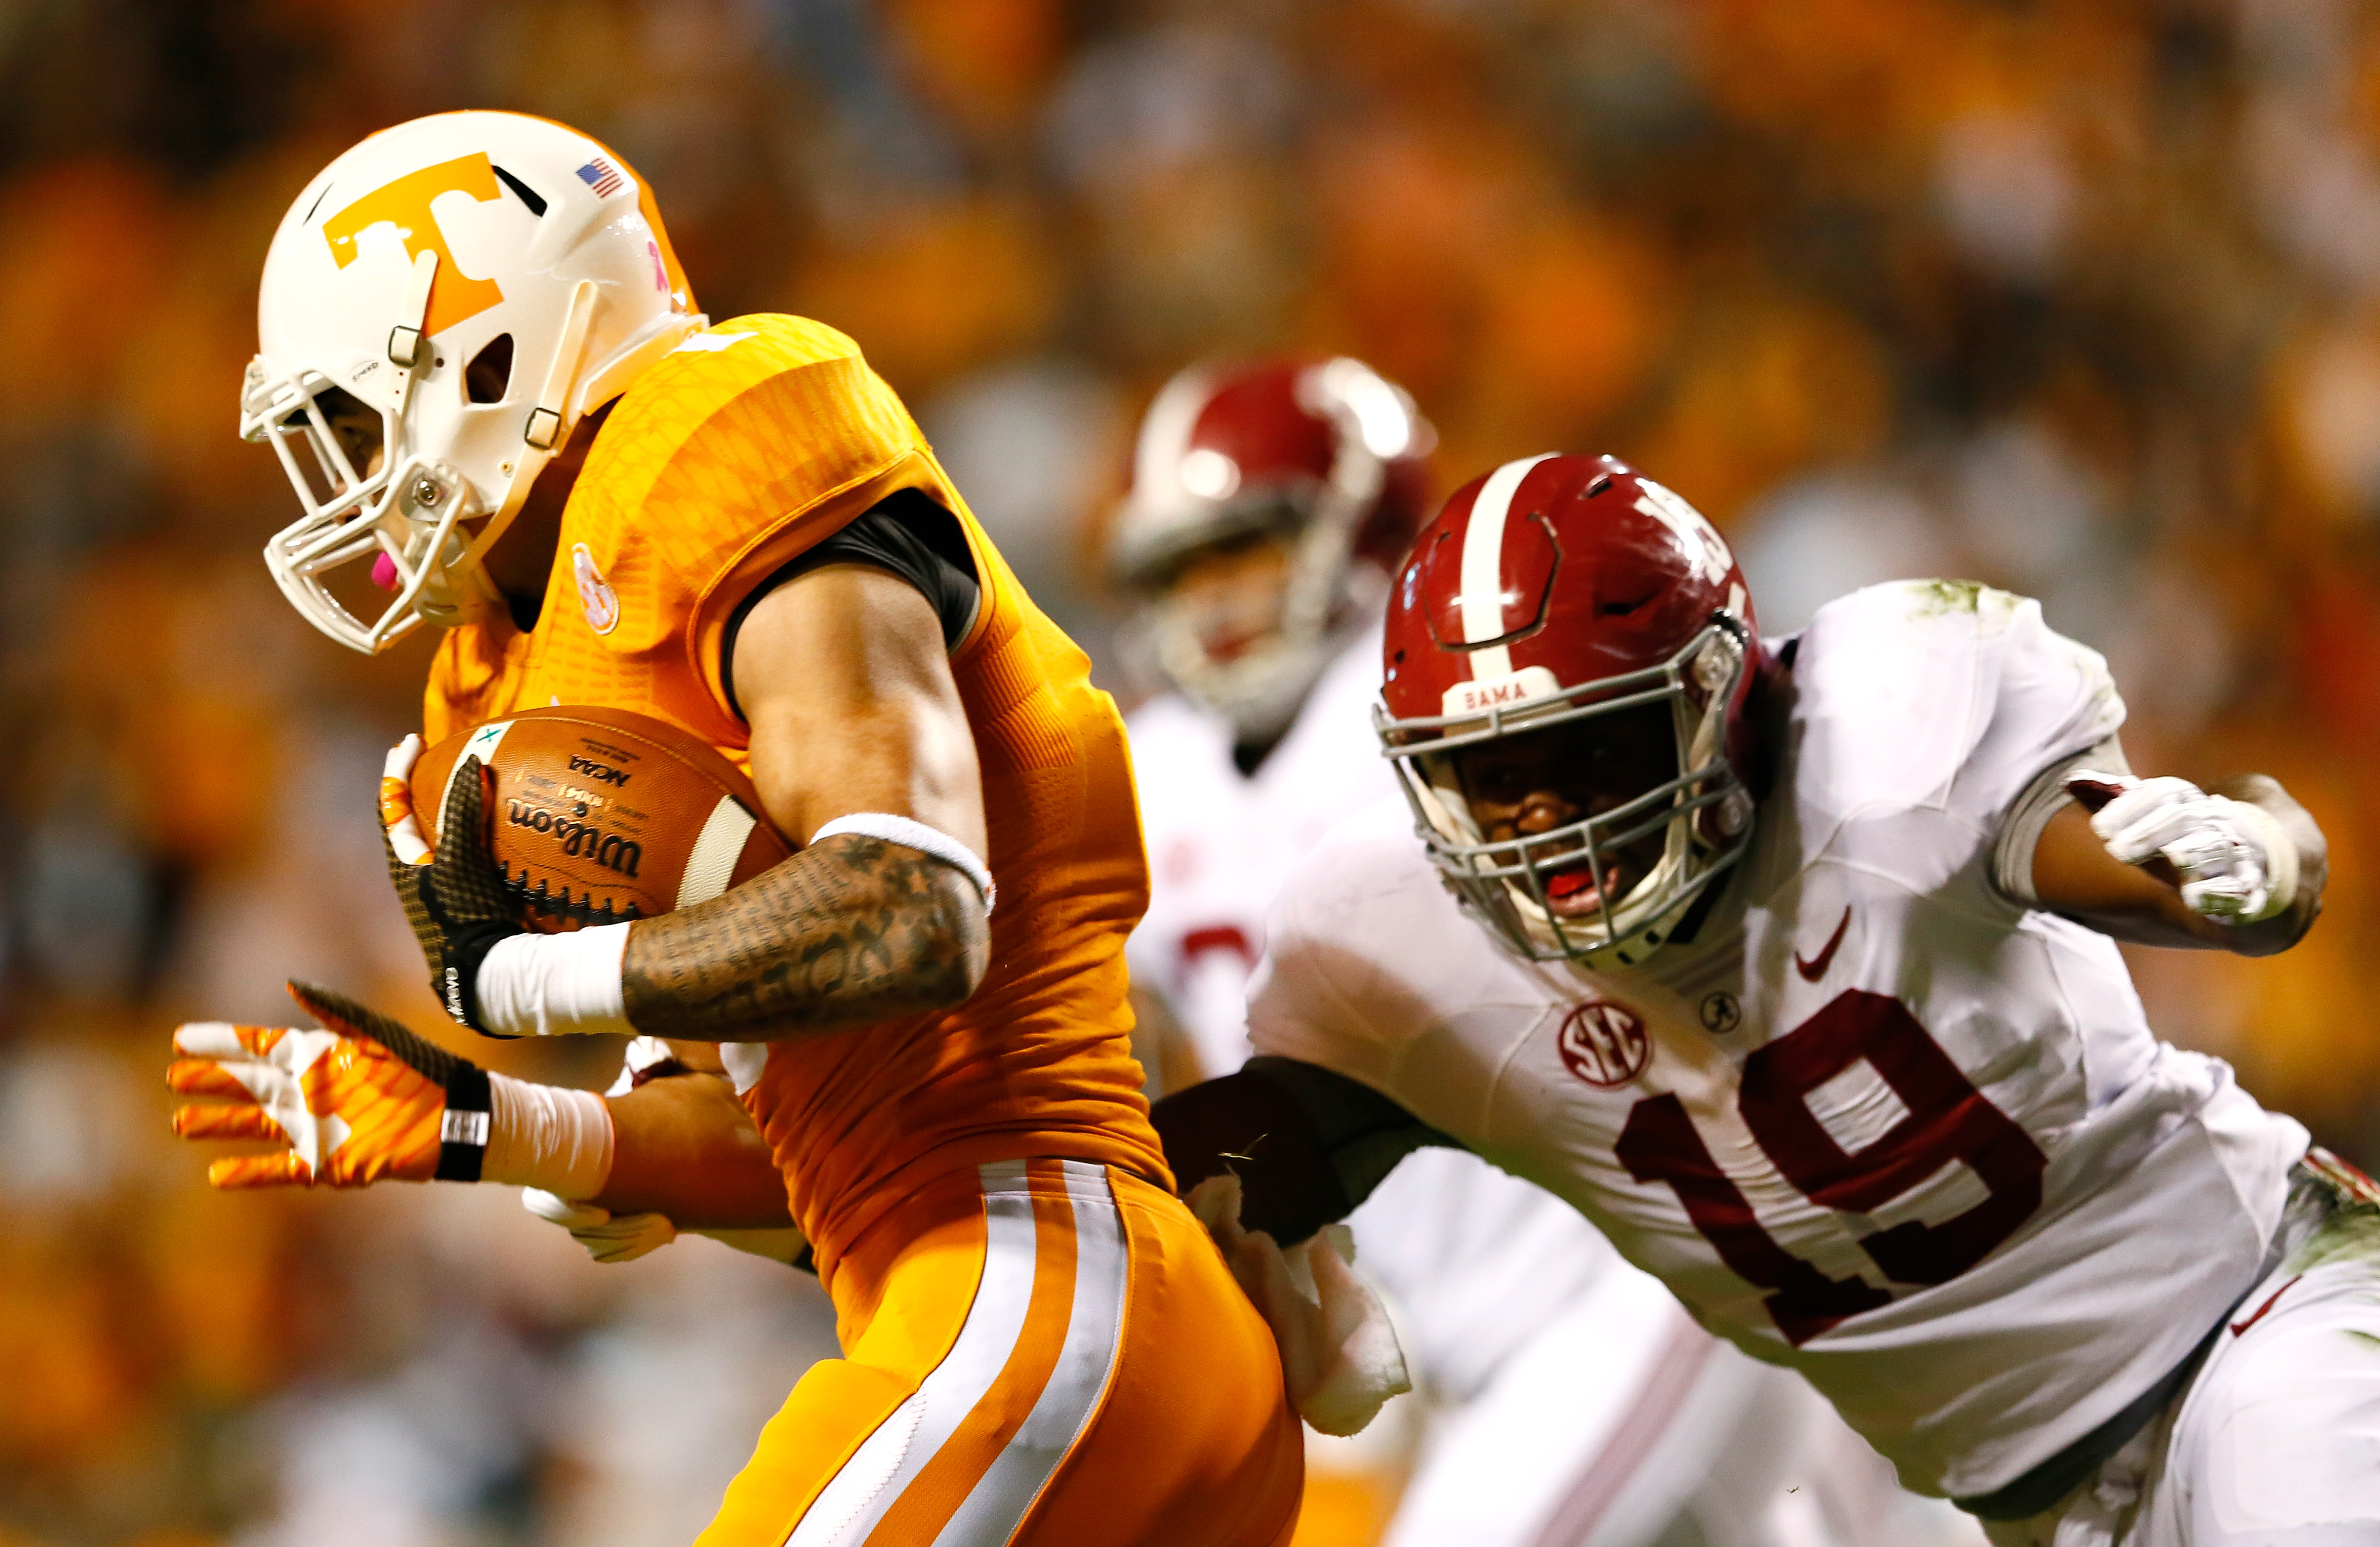 Reggie Ragland (19) of Alabama is part of an impressive focus on defense for the Bills thus far in the draft. (Getty Images)